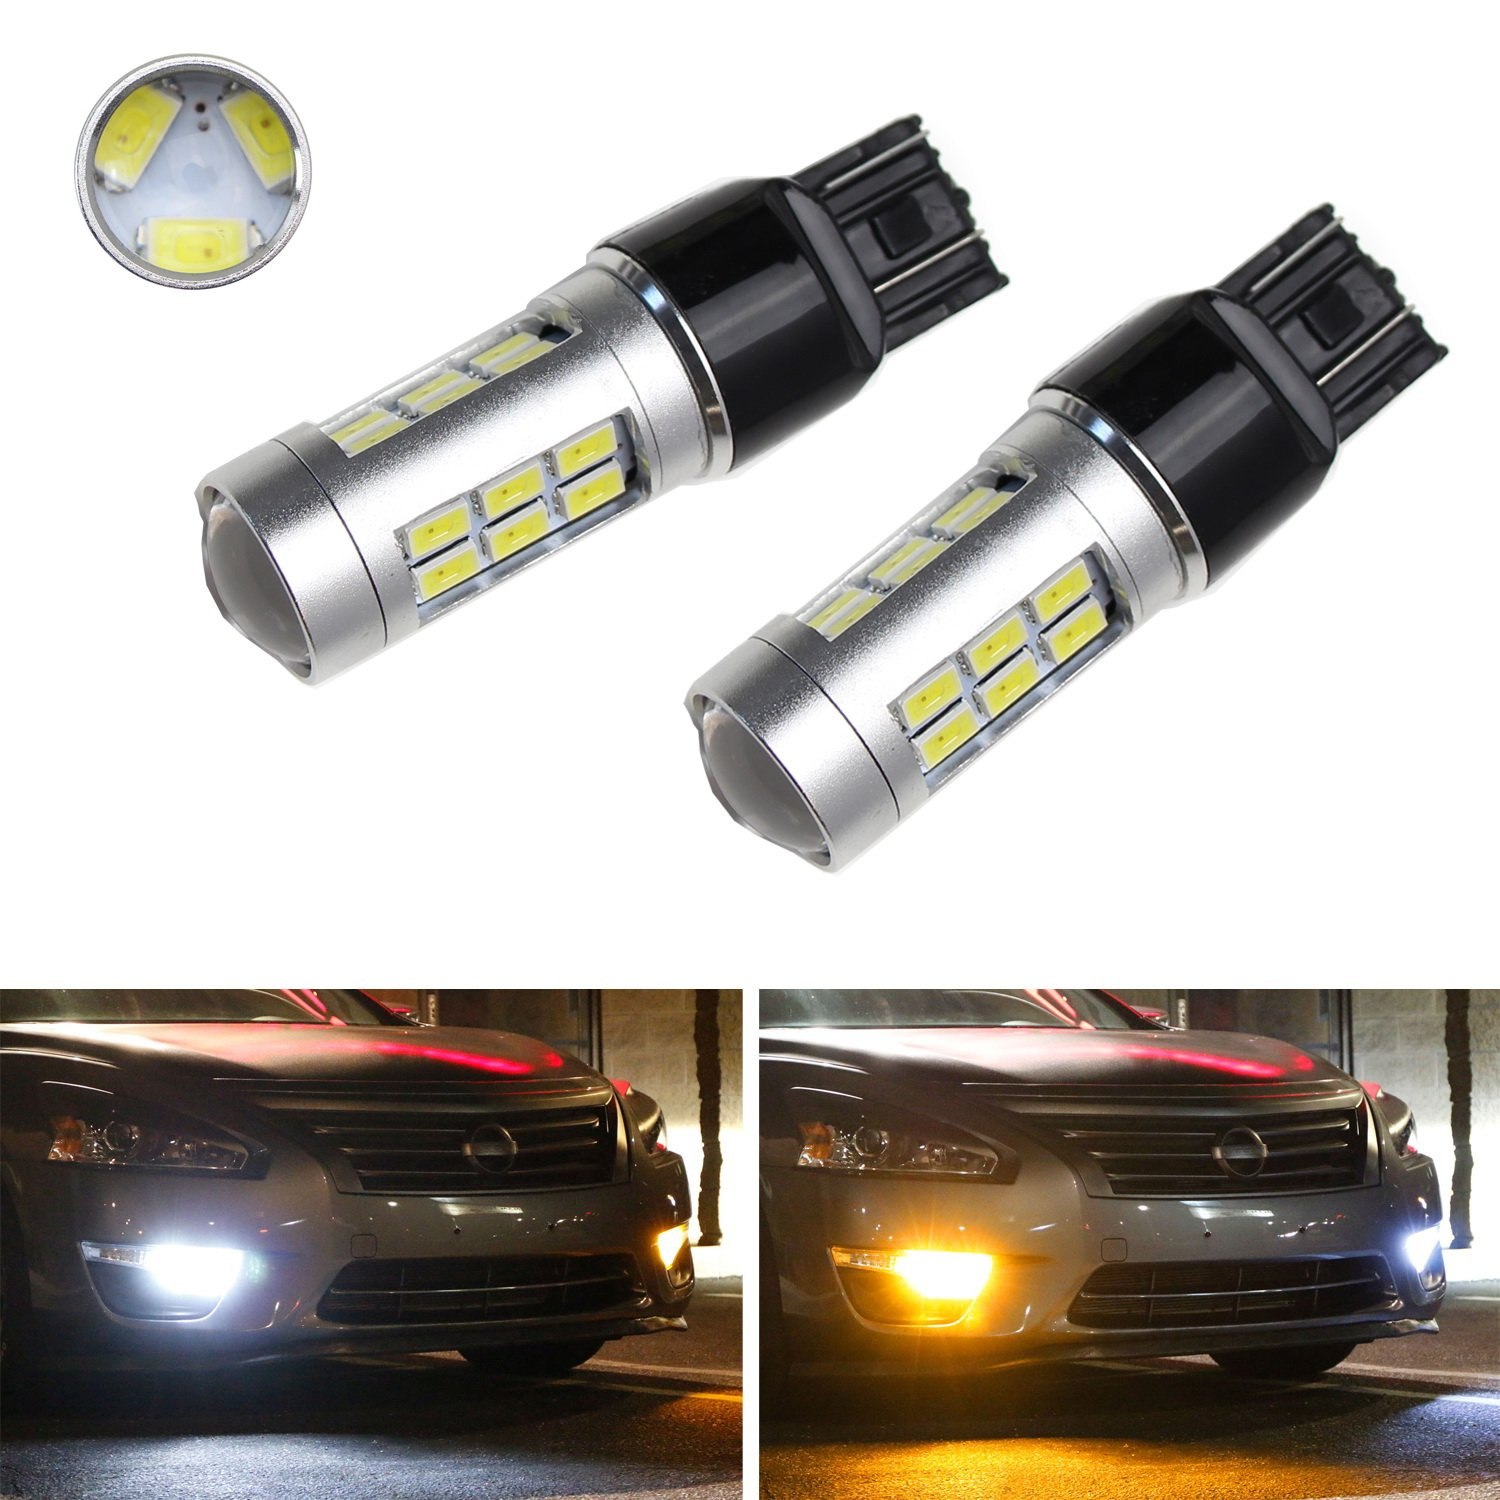 iJDMTOY (2) 21-SMD White/Amber Dual-Color Chipset High Power 7443 7444 7444NA T20 Switchback LED Bulbs For Car Front Turn Signal Light Replacement